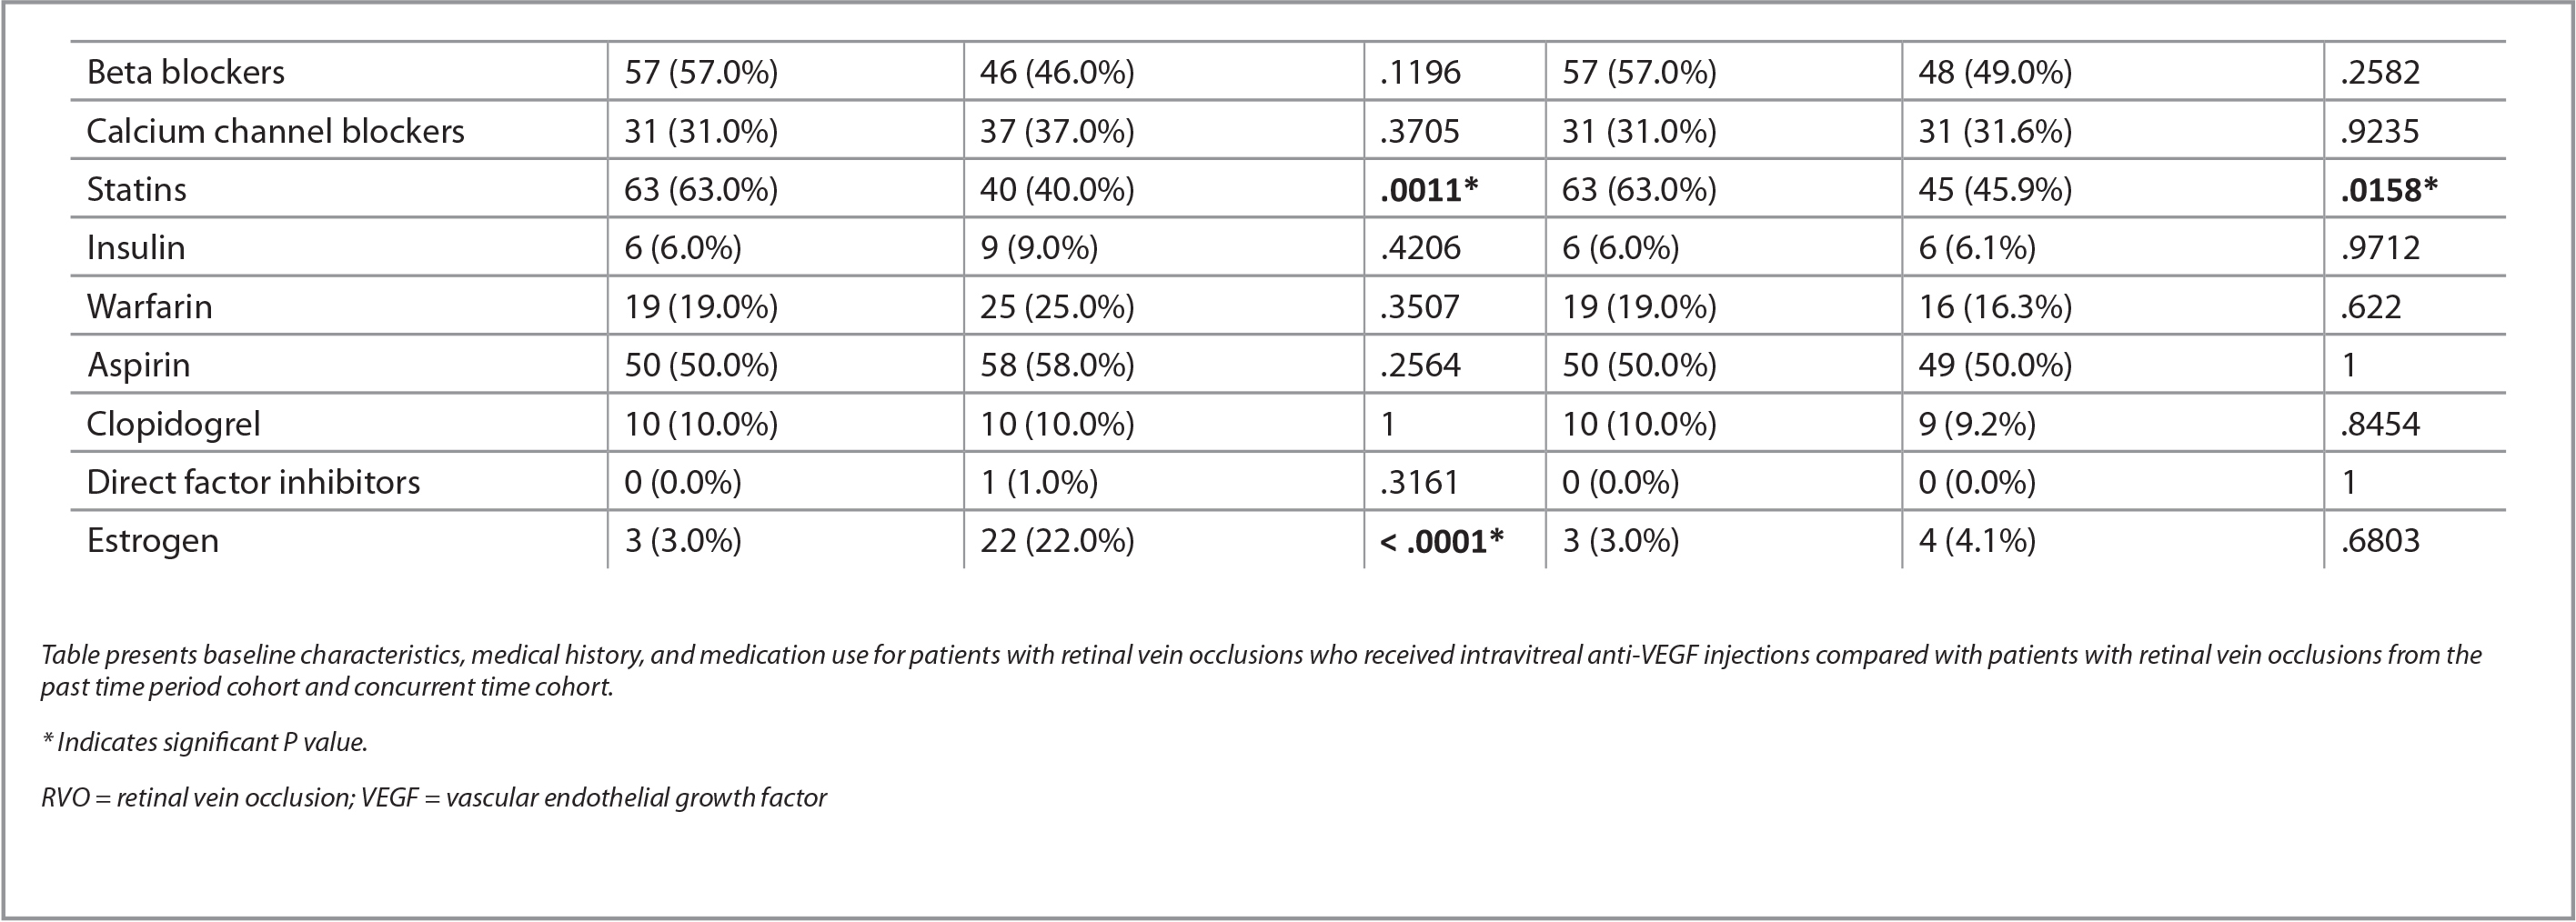 Comparison of Baseline Characteristics, Medical History, and Medication Use for Patients With RVO Who Received Intravitreal Anti-VEGF Injections